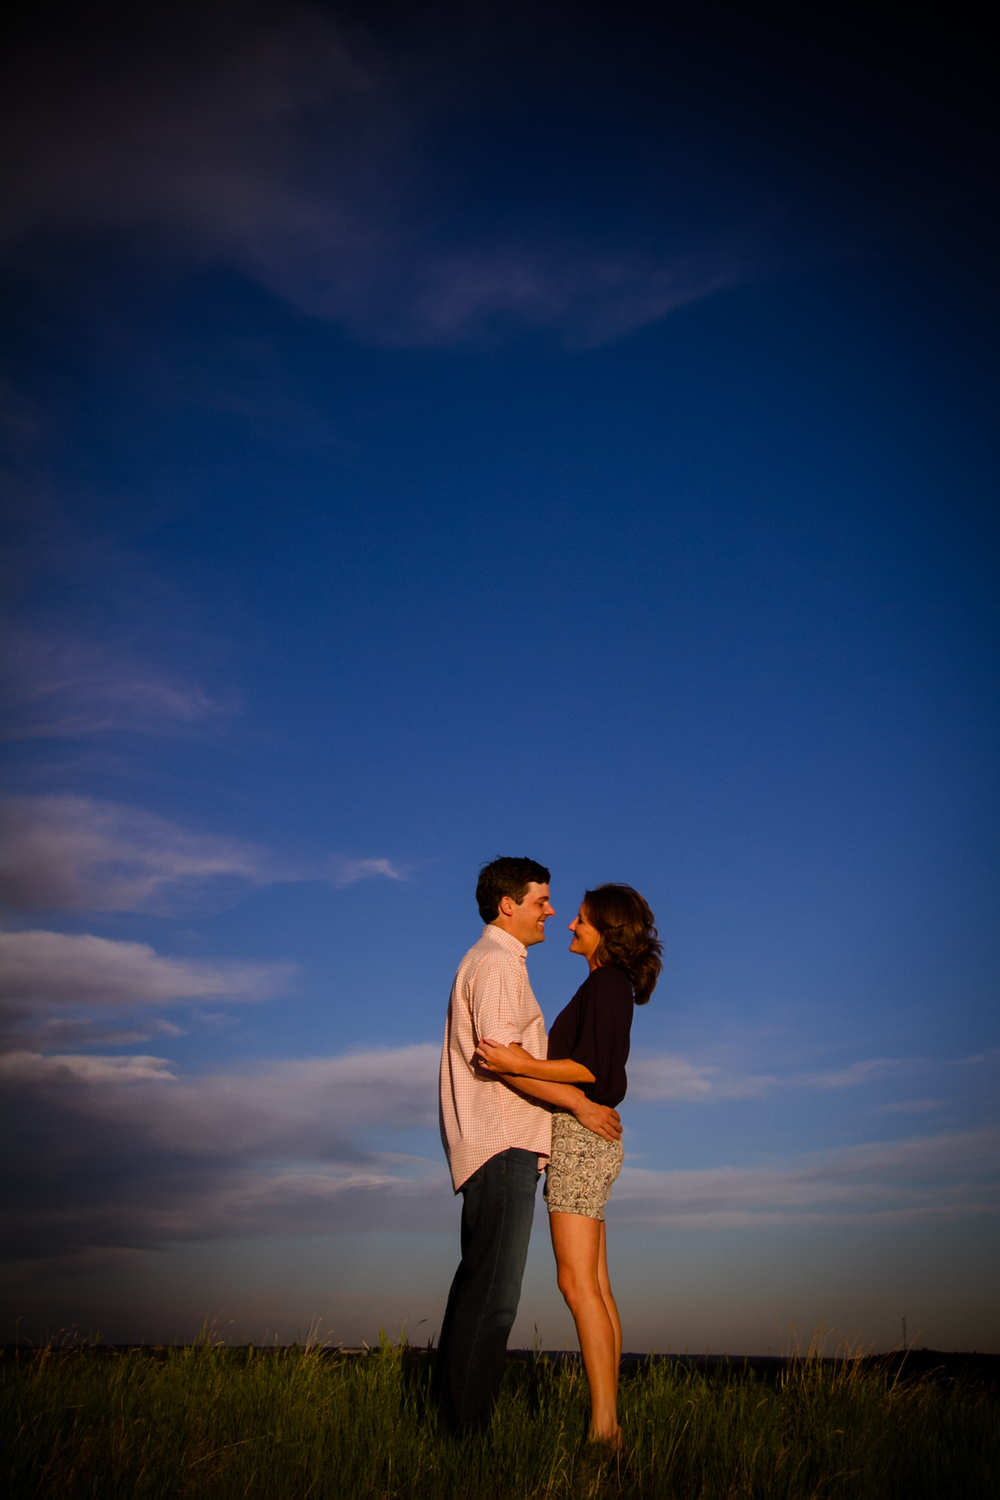 Castle_Pines_Colorado'_Engagement_Photos_016.JPG